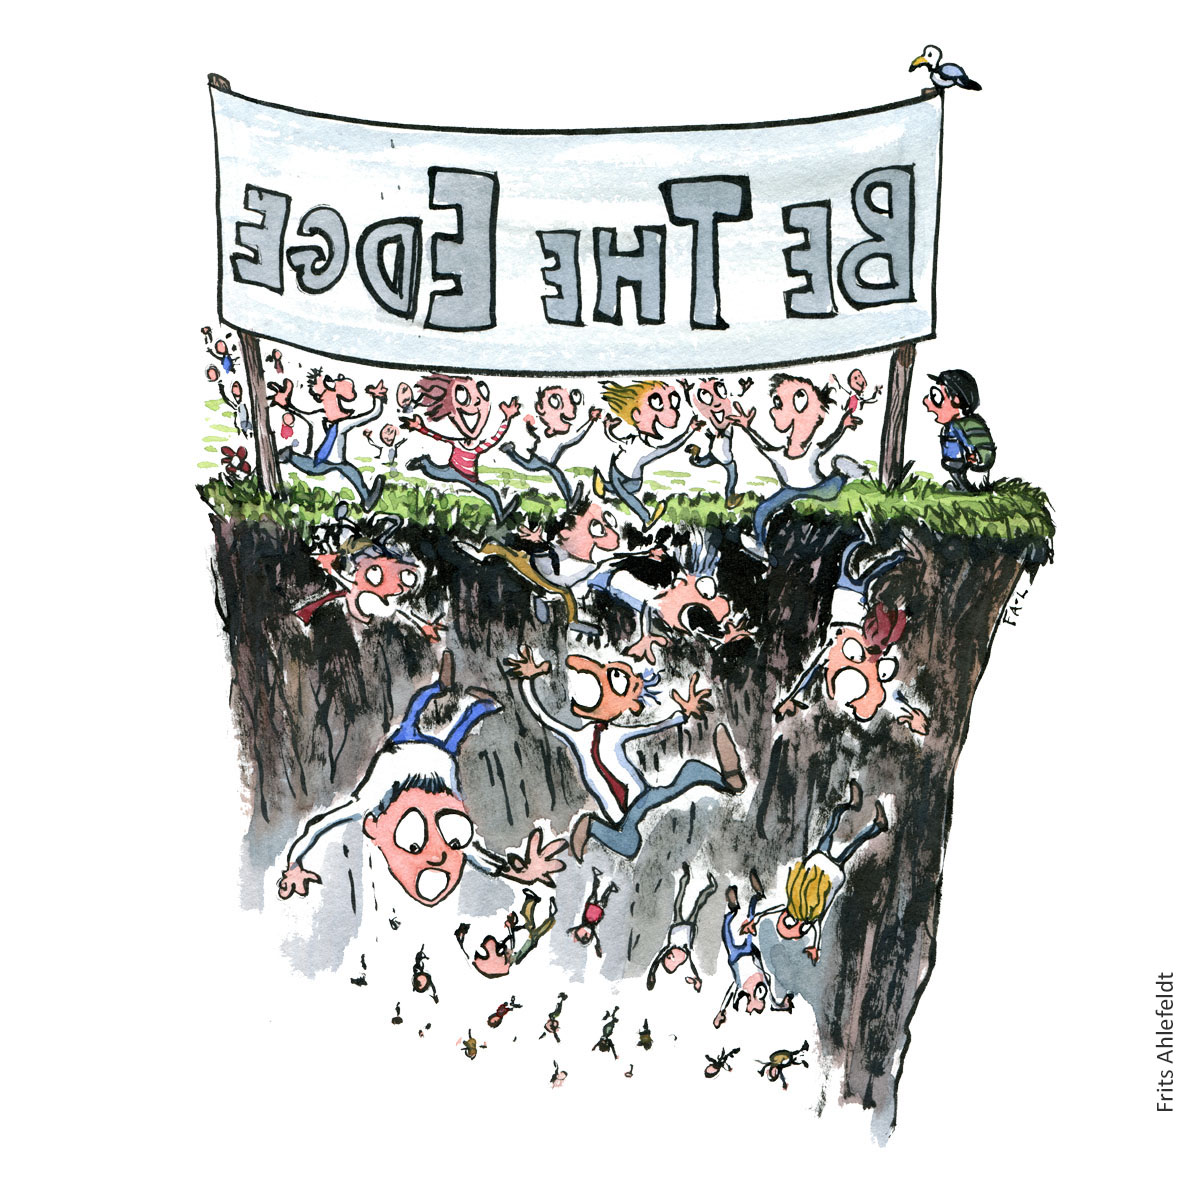 """People running towards an edge with a huge banner that states """"be the edge"""" - falling down on the other side. Illustration by Frits Ahlefeldt"""